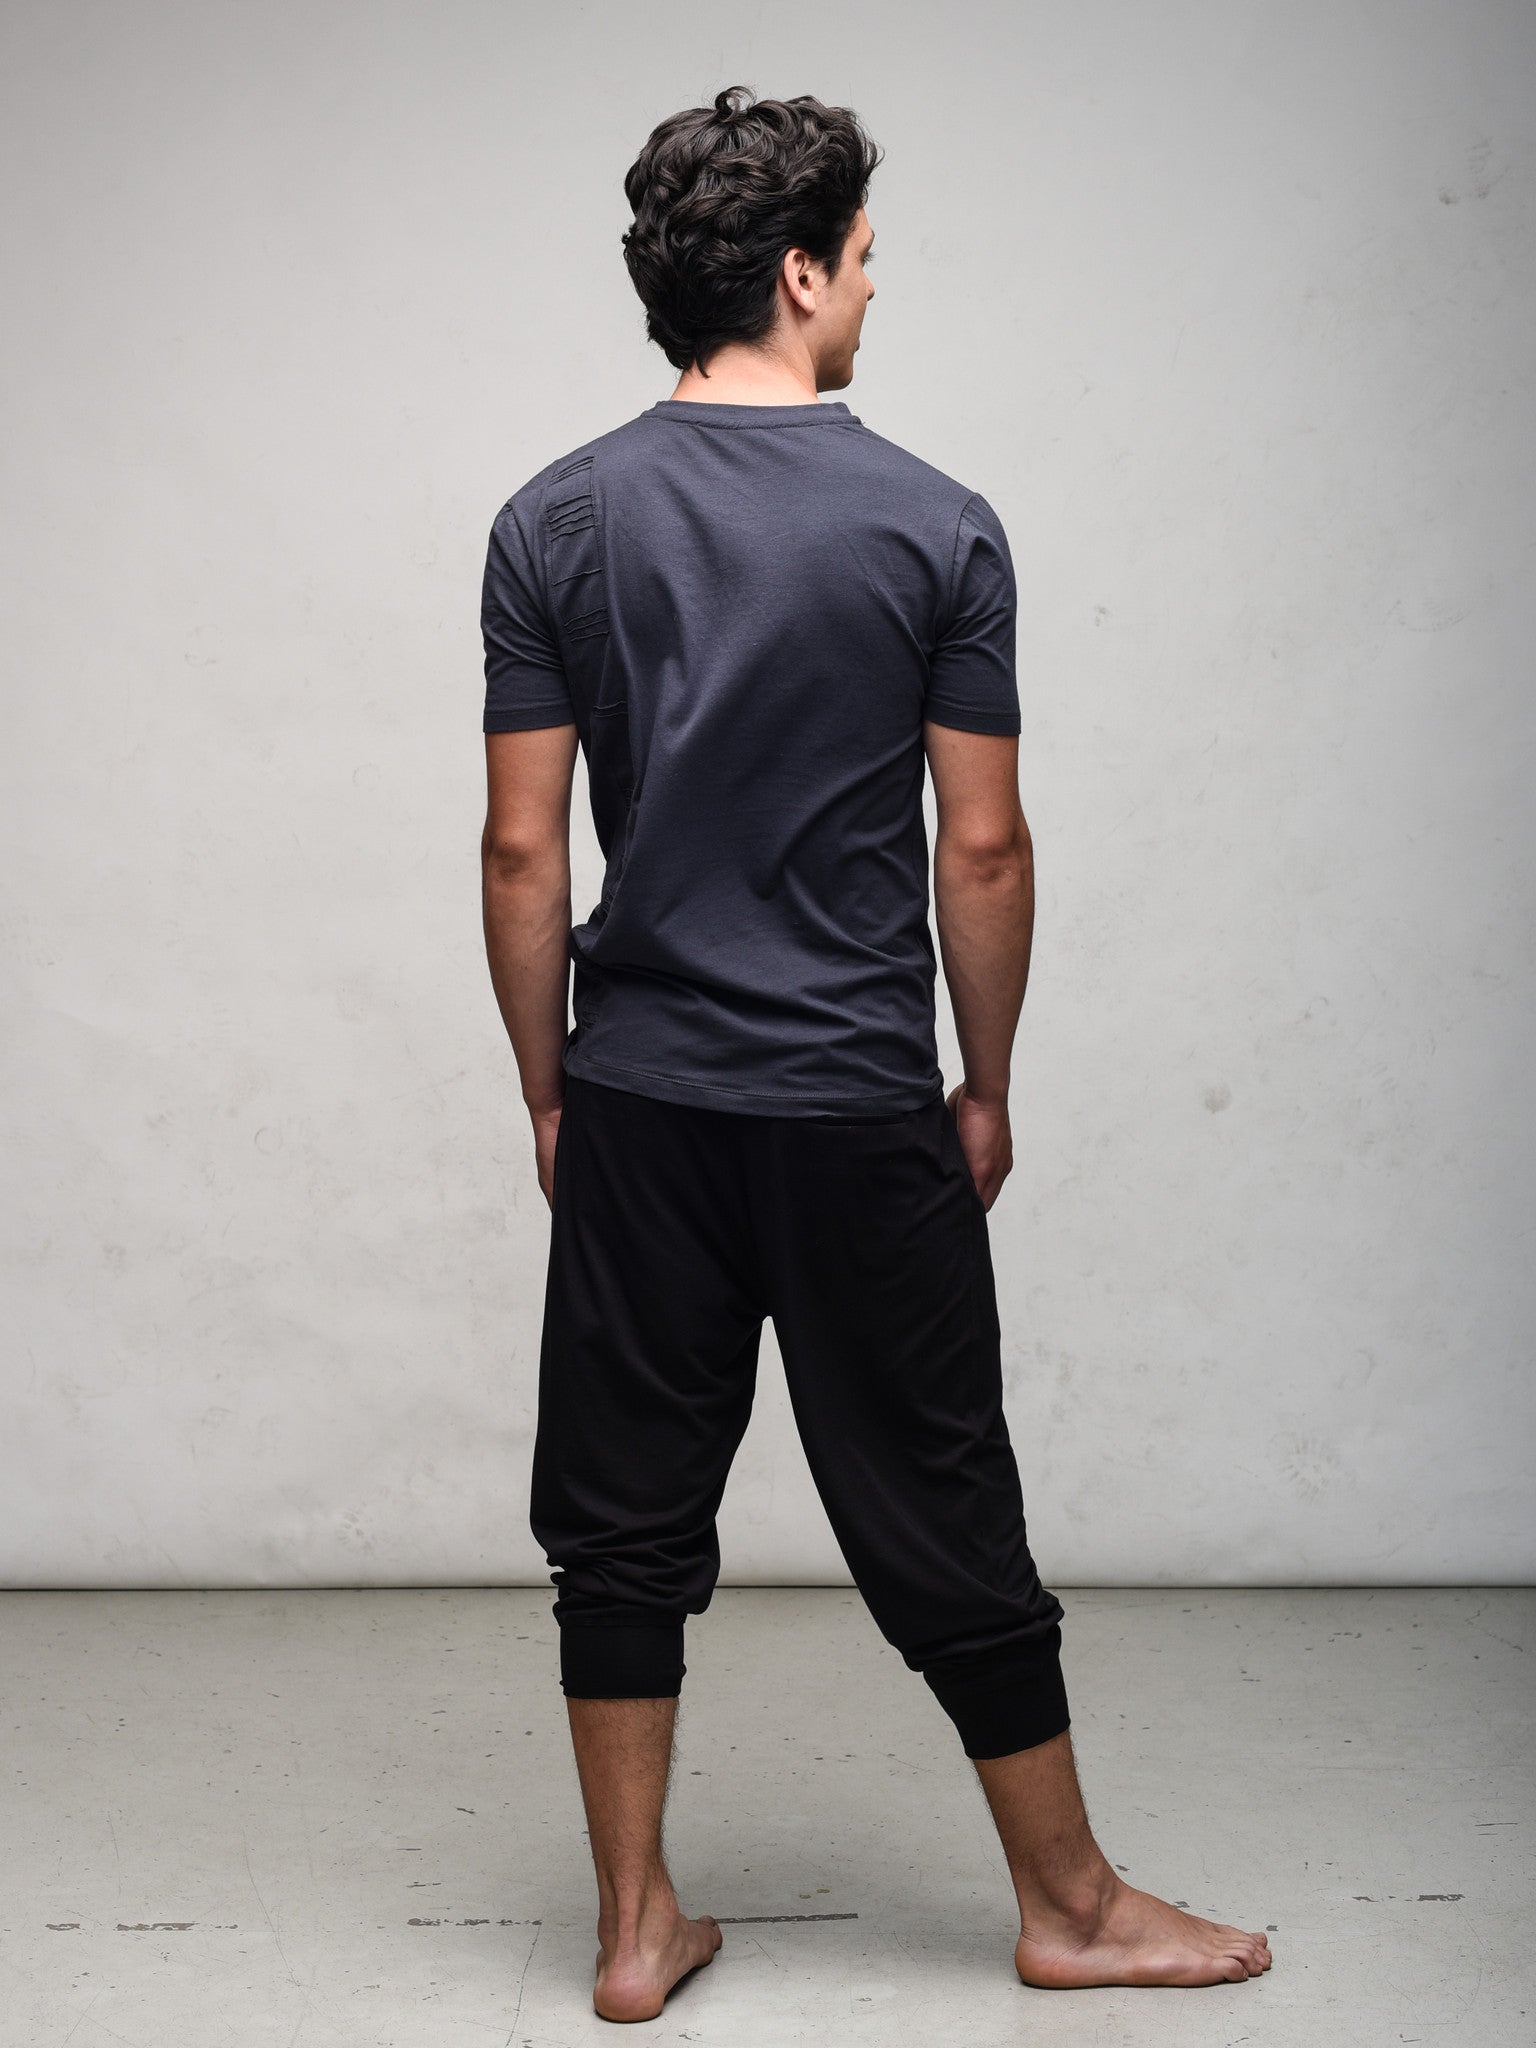 Unisex Crossover Capri - Modal French Terry or Organic Cotton heavyweight.